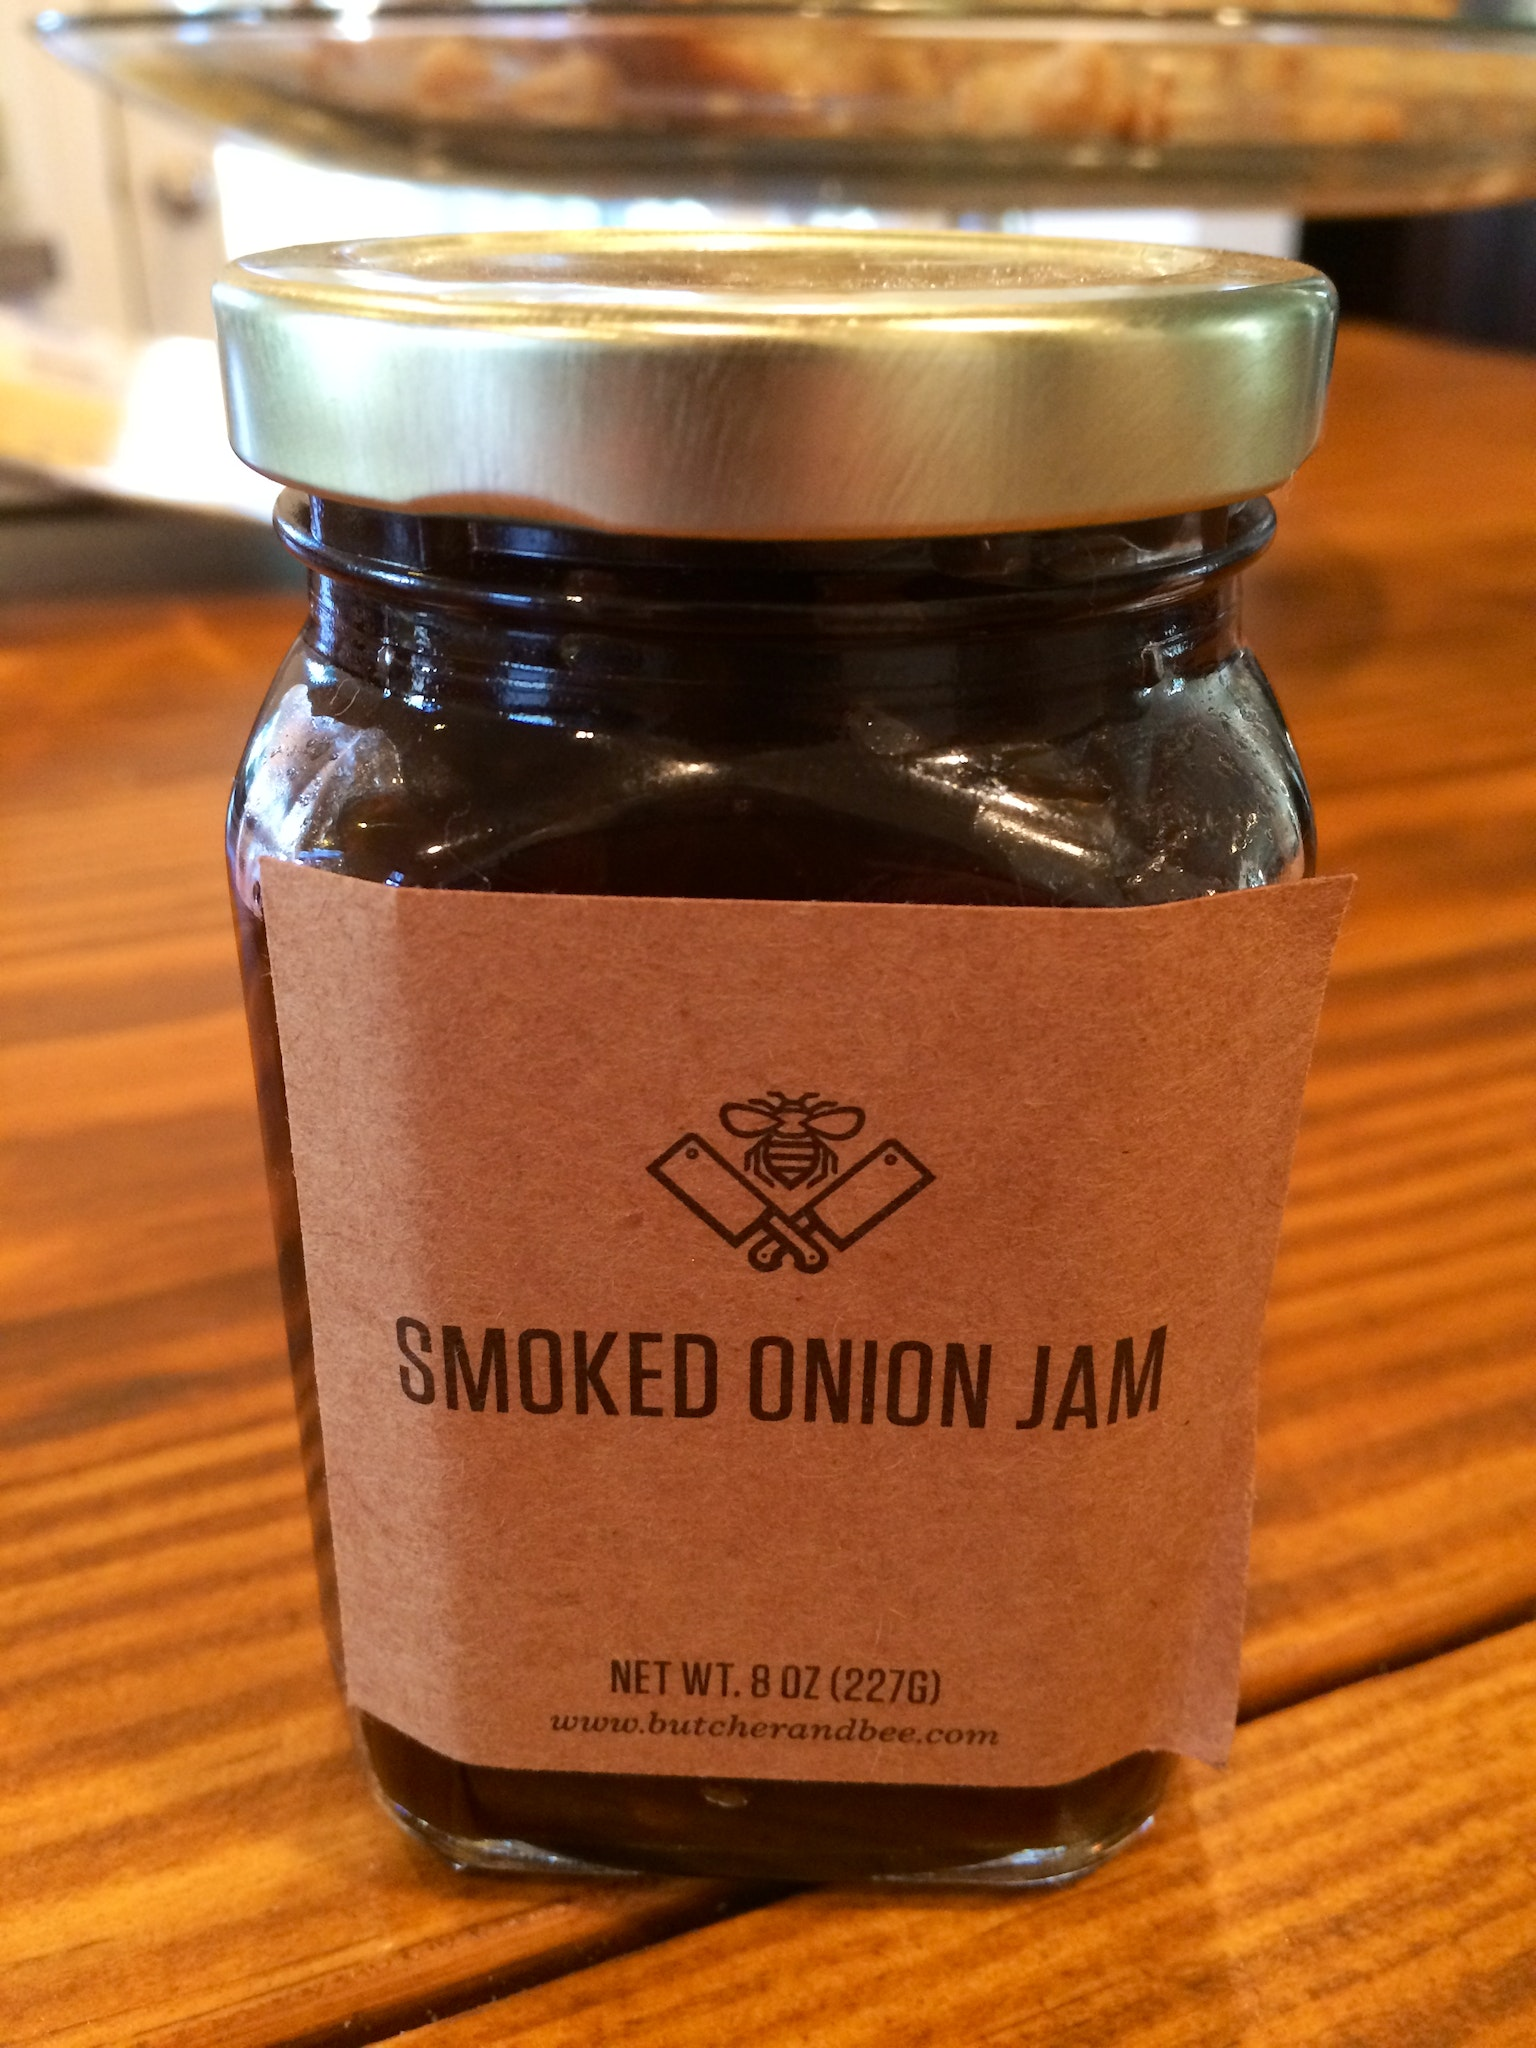 Smoked onion jam from Butcher & Bee